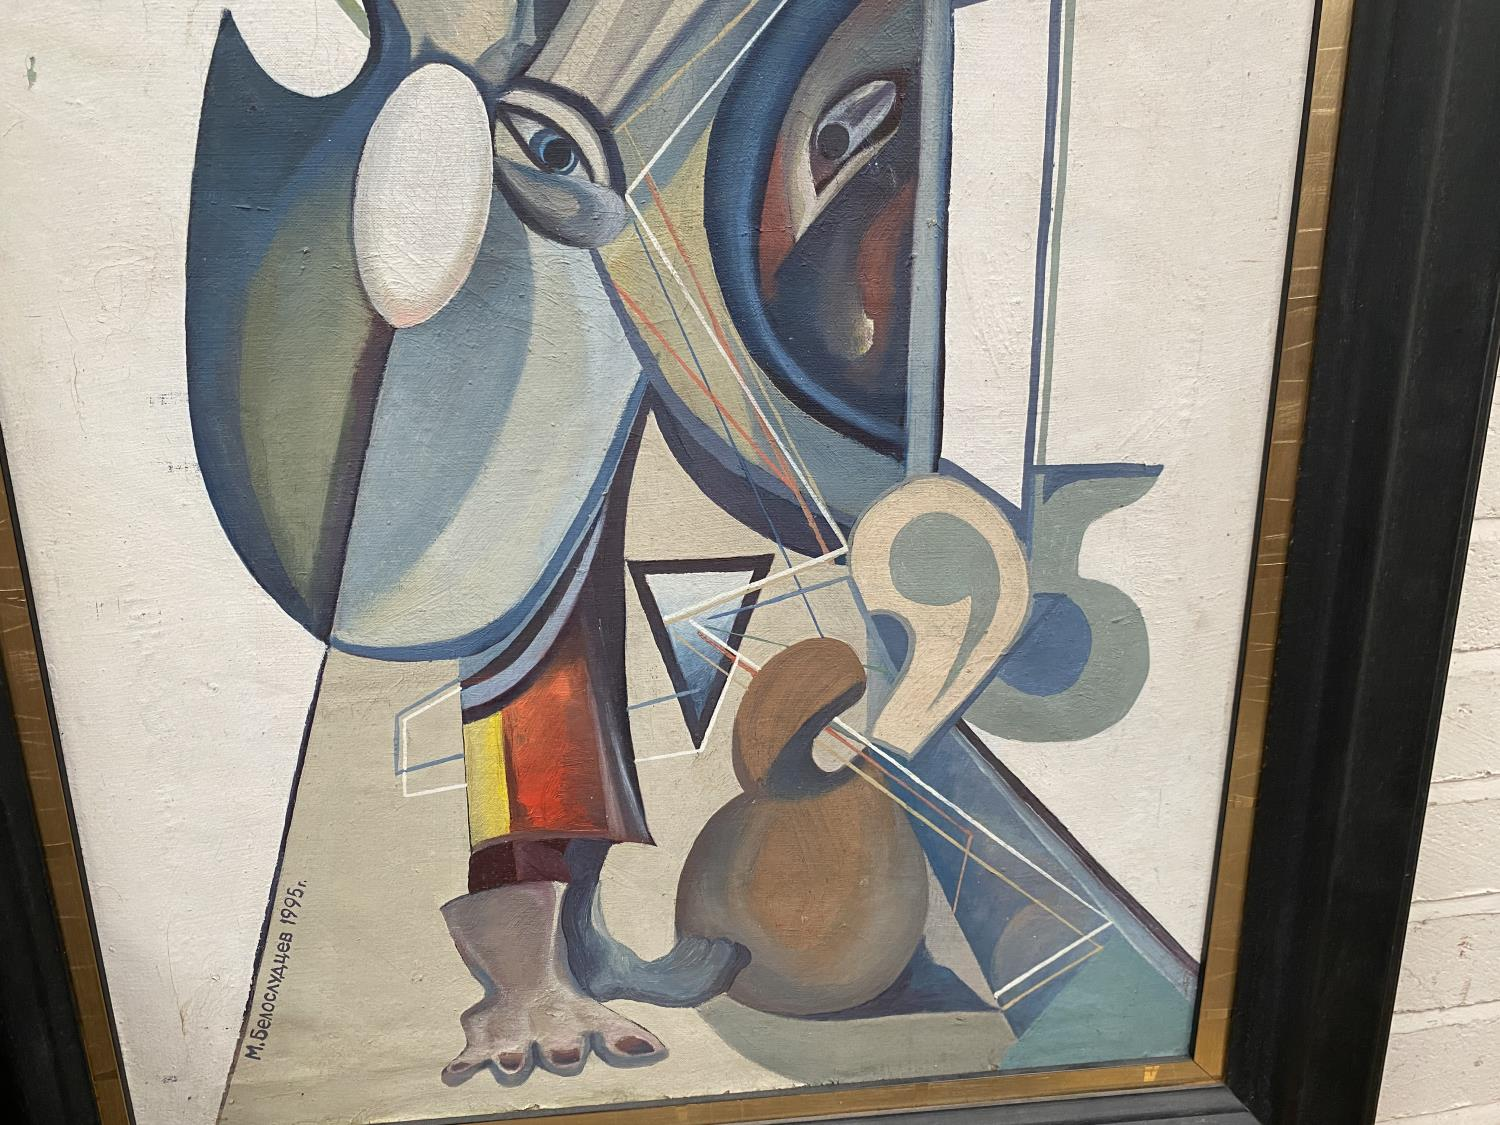 """M Balasludchev - """"Zerkalo"""" (in the looking glass), abstract oil on canvass in the manner of Picasso, - Image 6 of 6"""